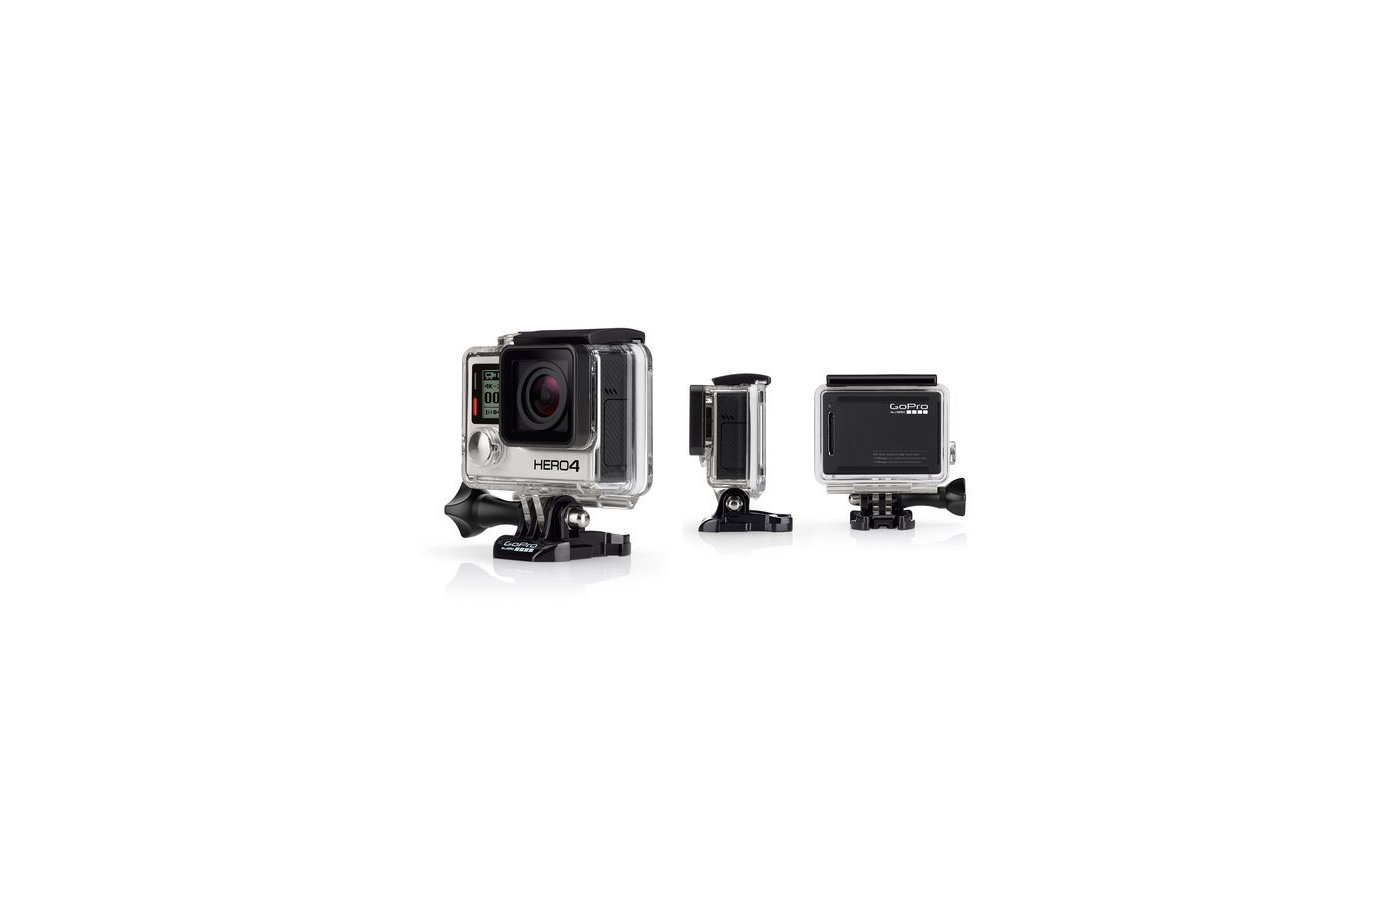 Экшн-камера GoPro Hero 4 Black Edition (CHDHX-401)